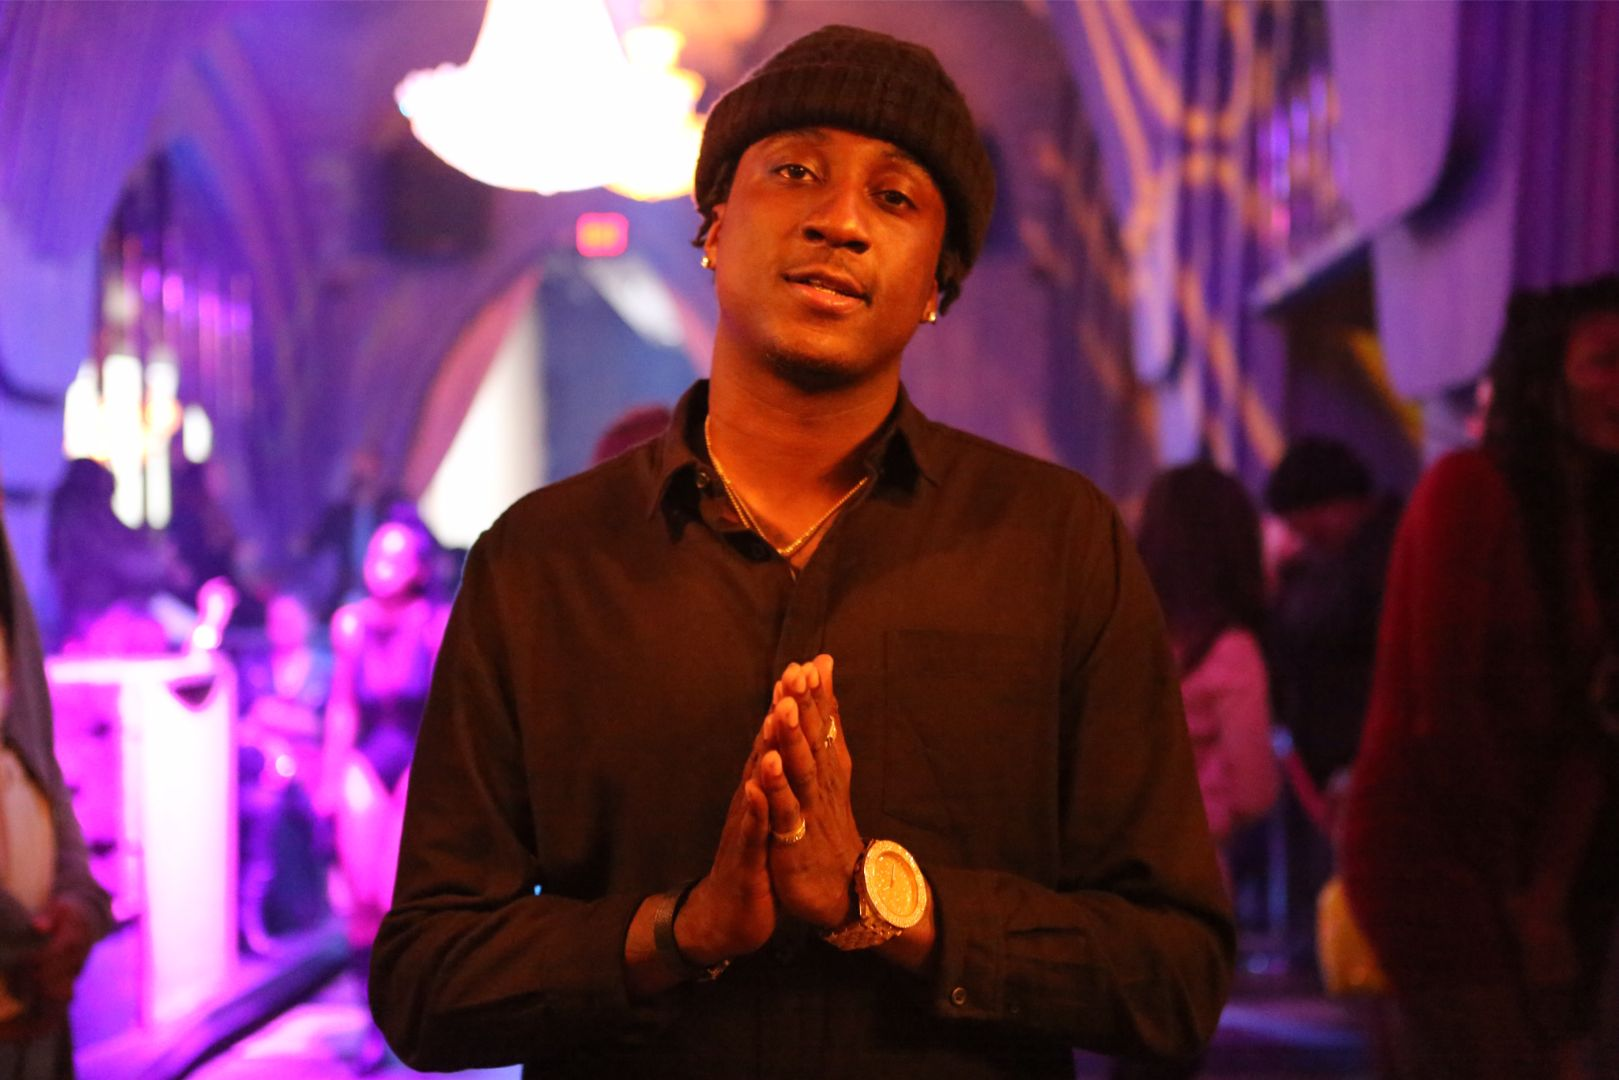 K Camp Gets The Nod From Migos During